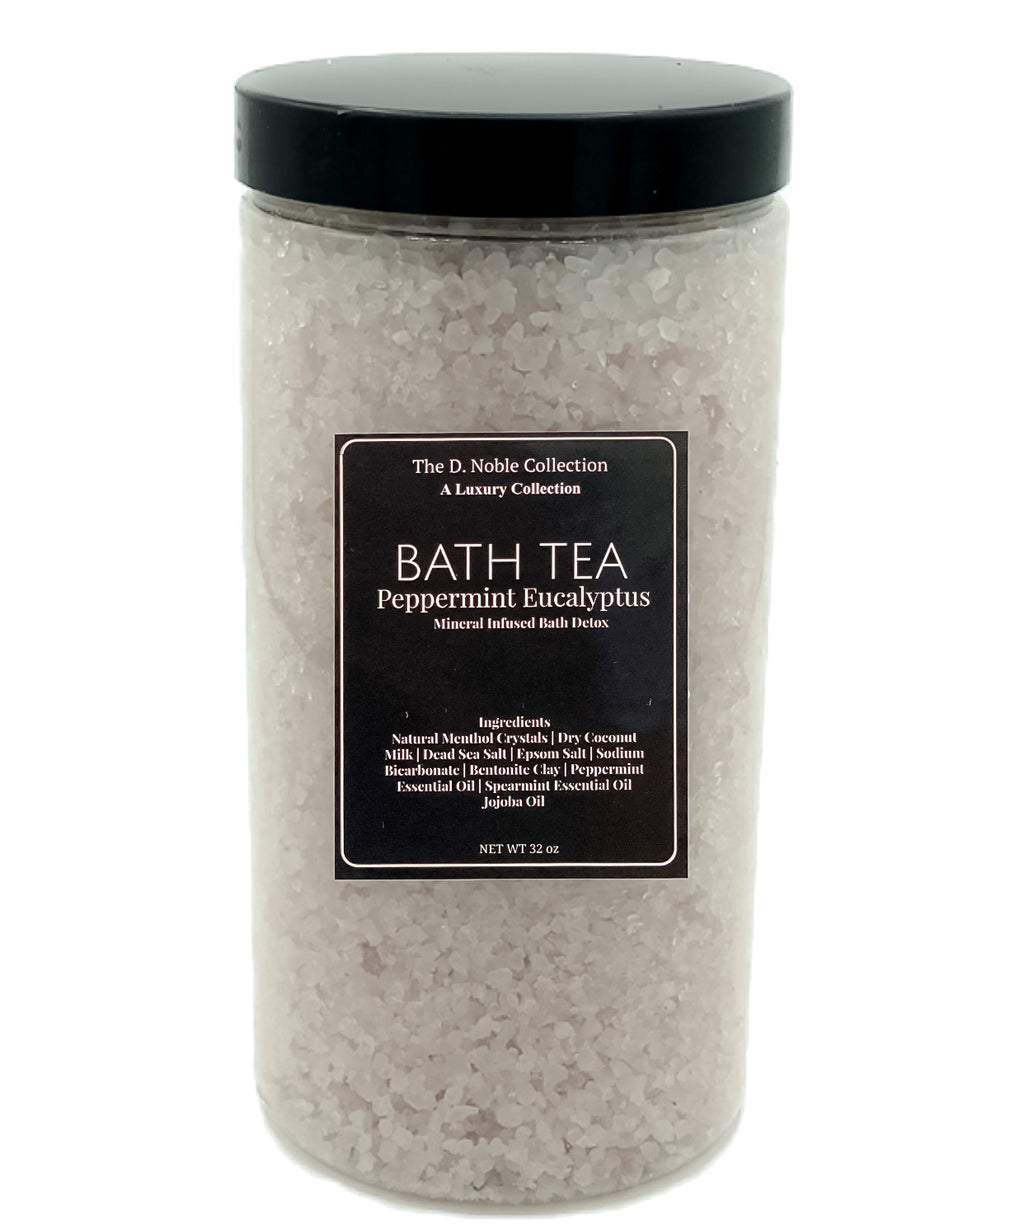 Peppermint Eucalyptus Mineral-Infused Bath Tea Detox